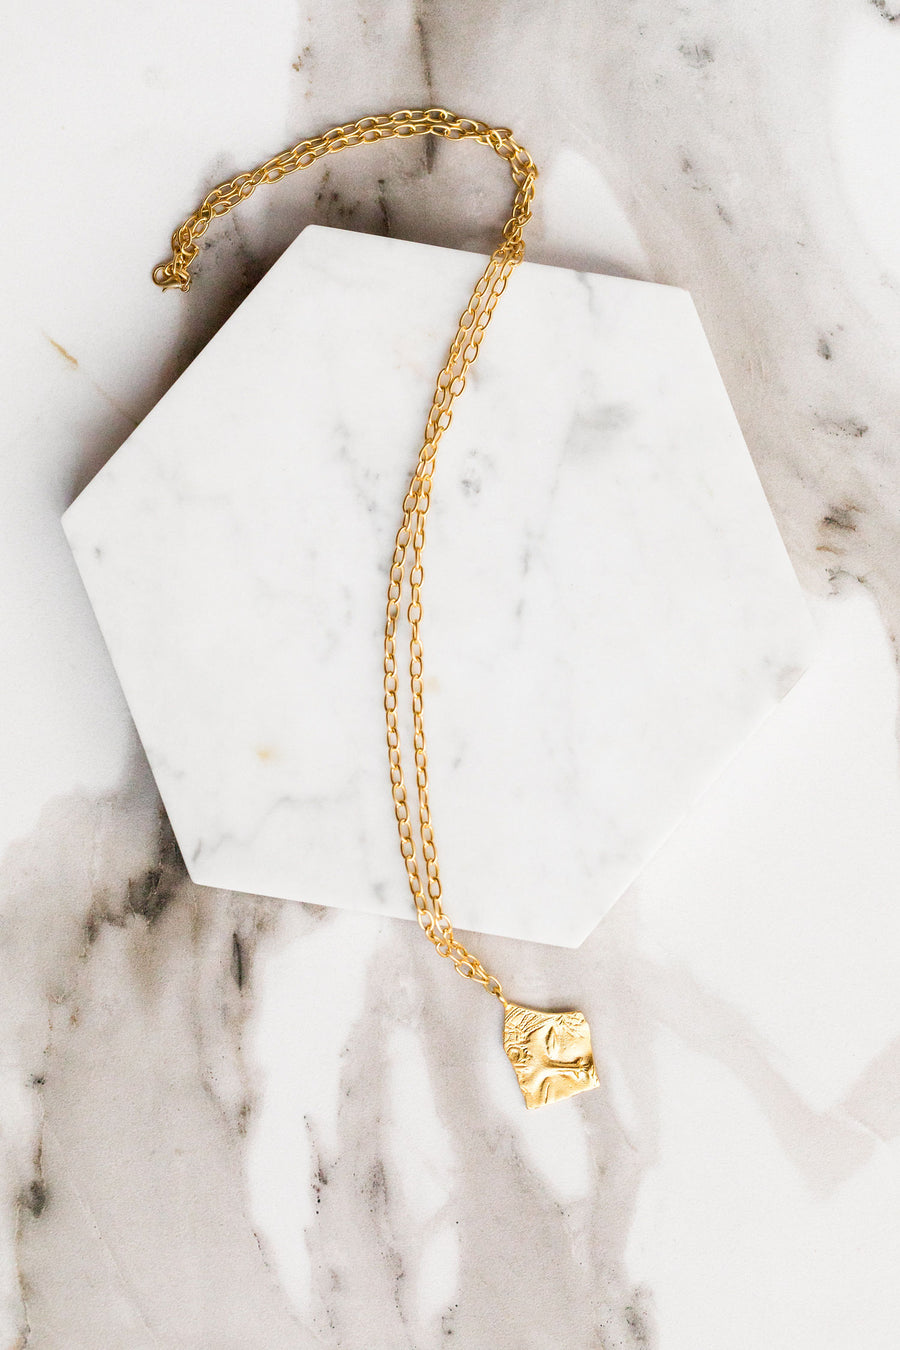 Find the perfect necklace you're looking for from Charme Silkiner! This beautiful 22K Gold Chain Necklace with Greek Sleeping Beauty Pendant is perfection. Great for layering or wearing alone the Paxton Necklace is the perfect piece of unique jewelry that everyone should own.